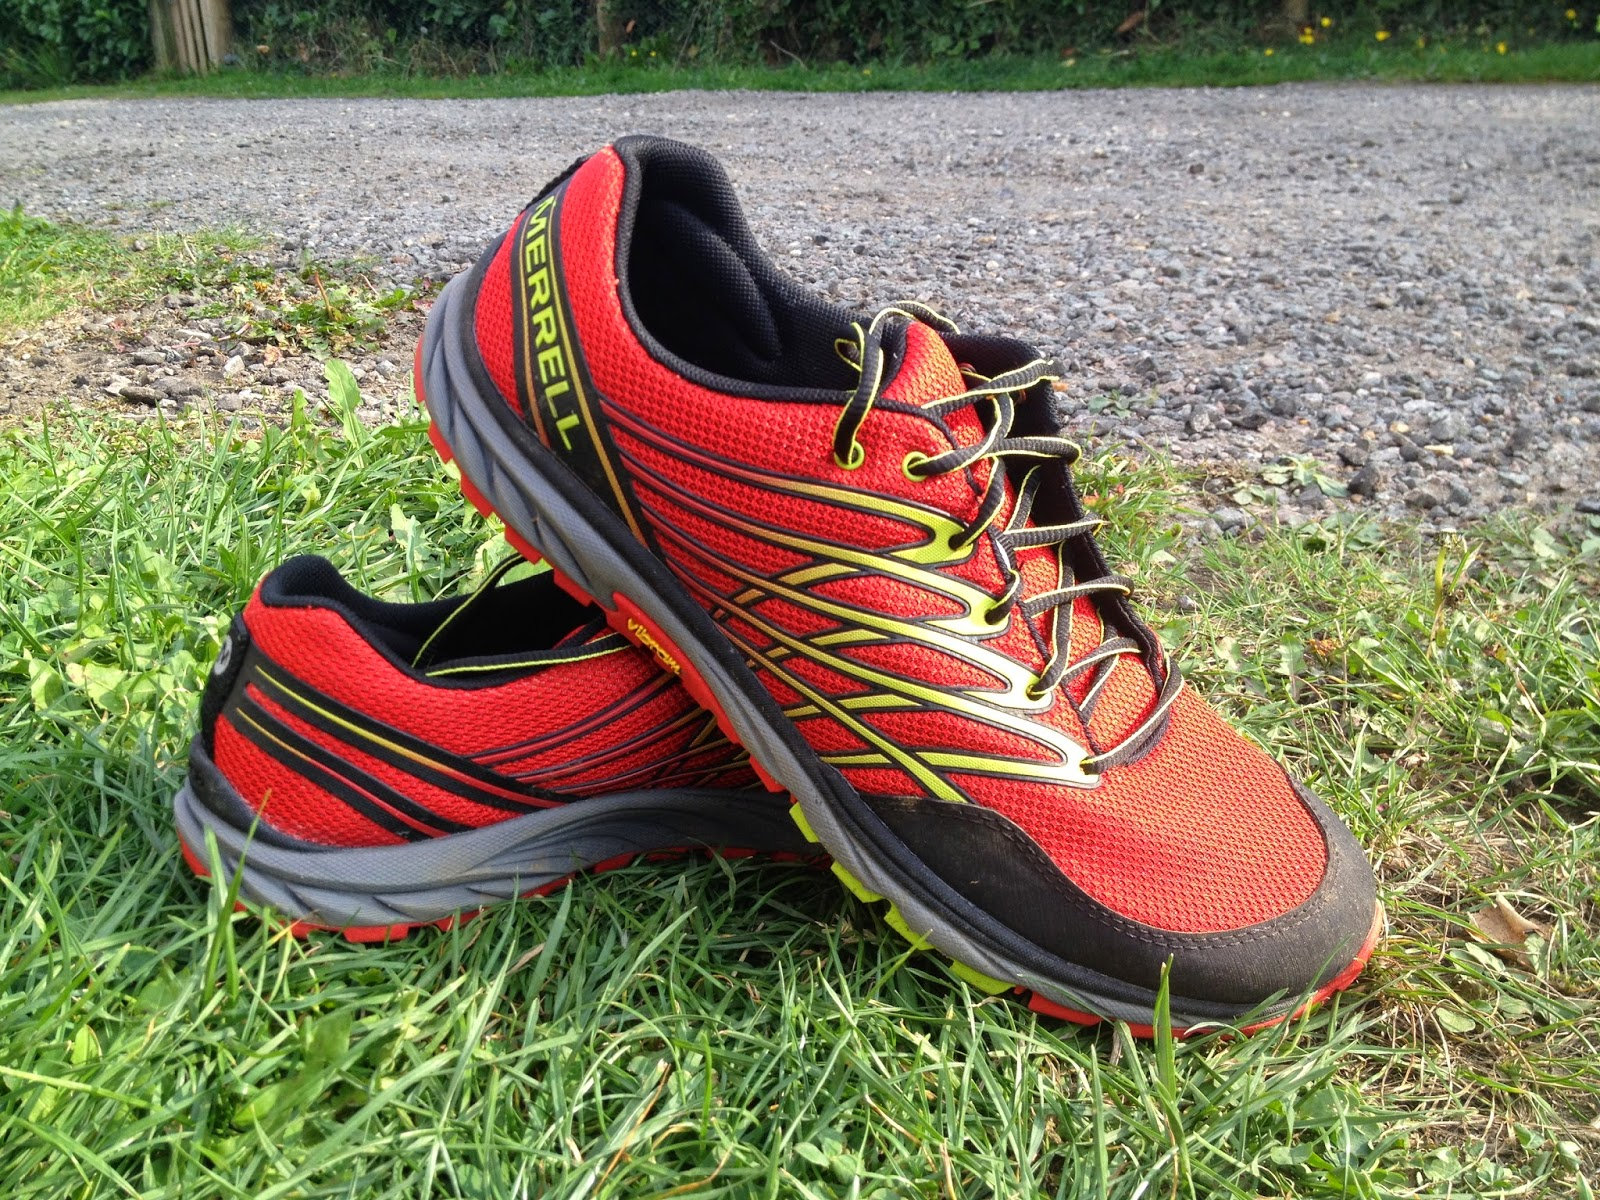 ccf940ef131e CavemanClarke  Merrell Bare Access Trail Review